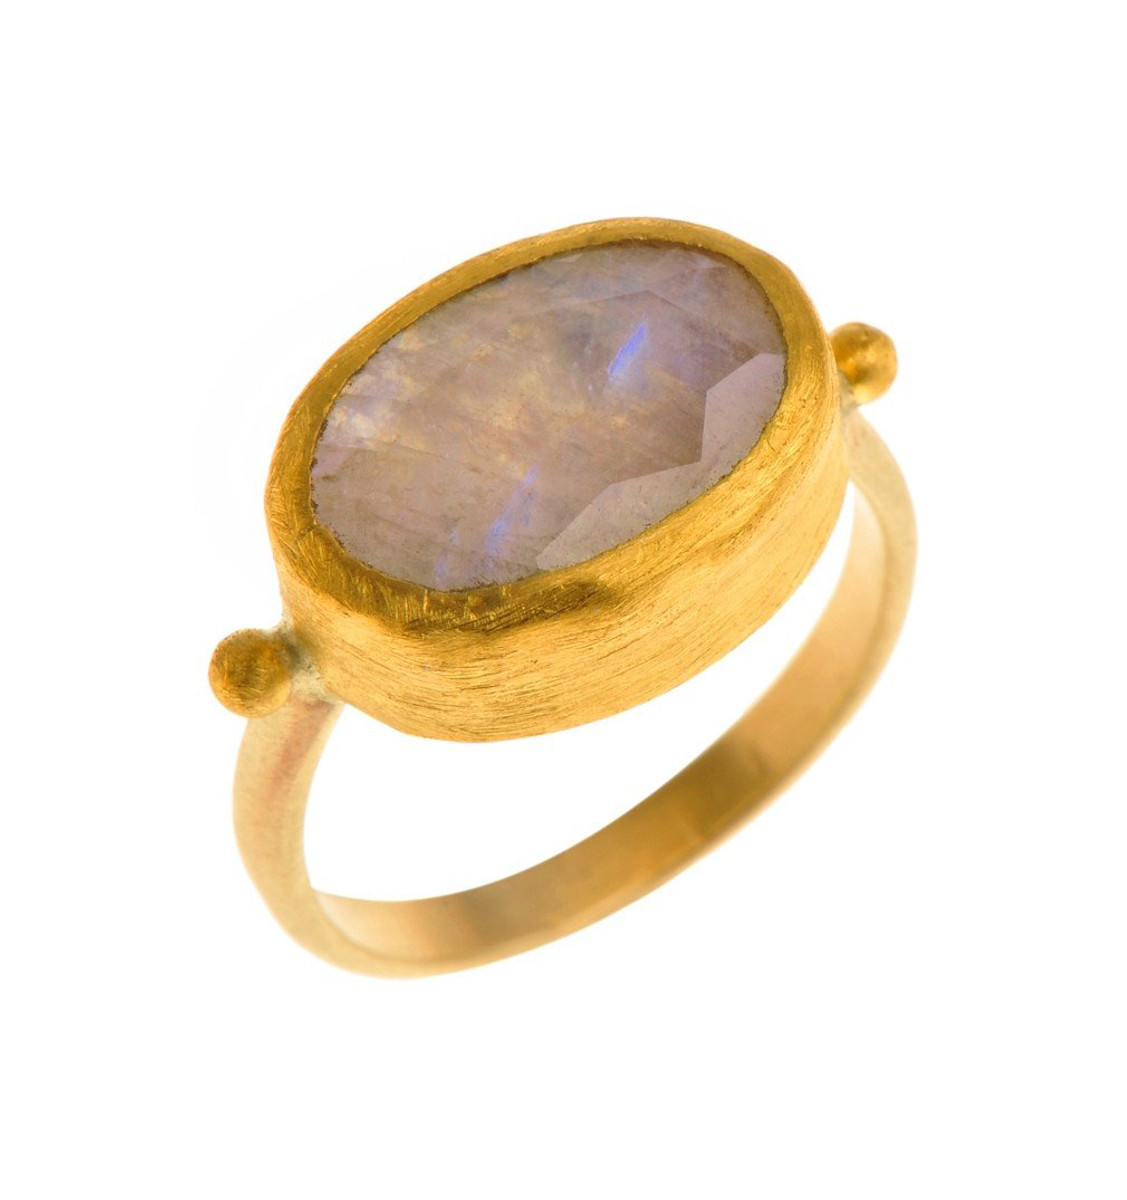 Bridal Moonstone Gold Ring - New Arrival